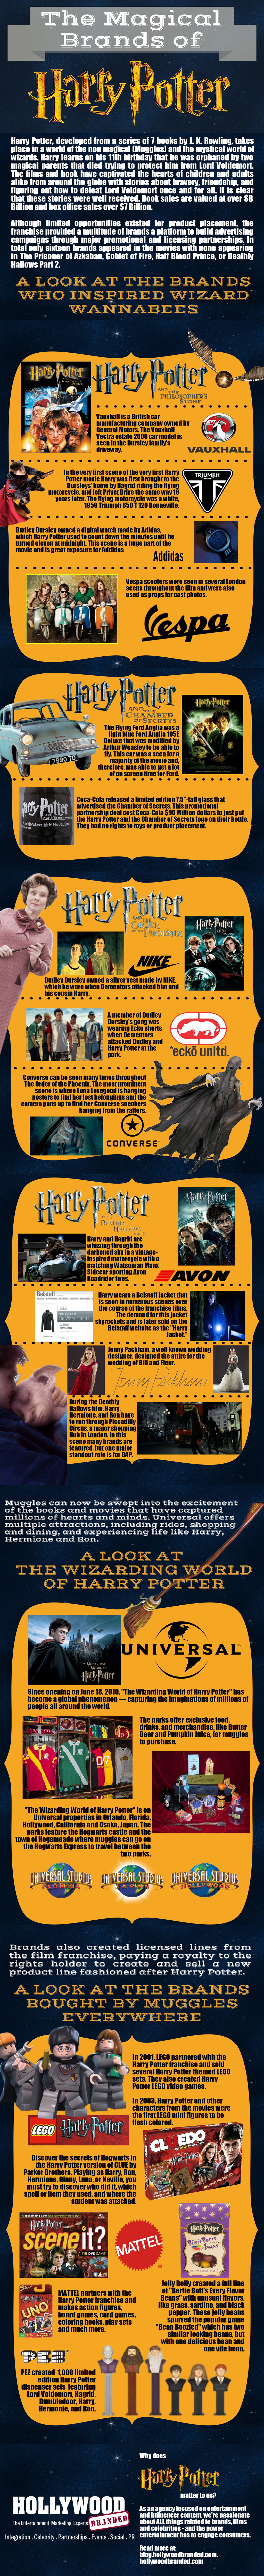 Magical Harry Potter Brand Partnerships Infographic.png